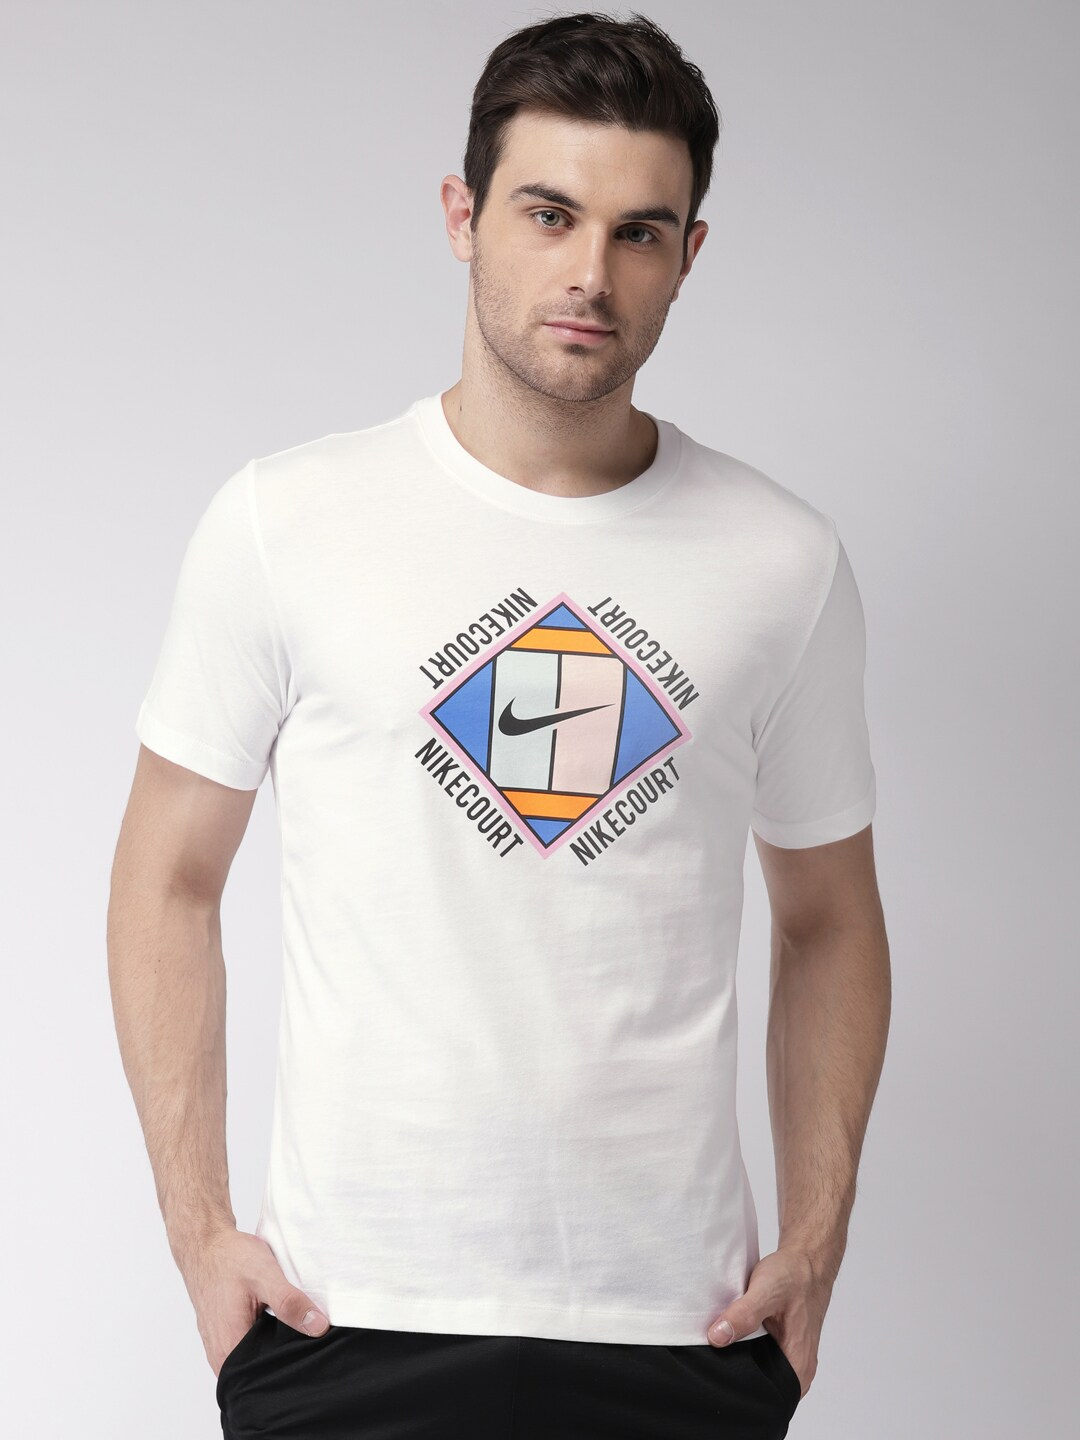 2b997dad1d Nike Graphic Tshirts - Buy Nike Graphic Tshirts online in India